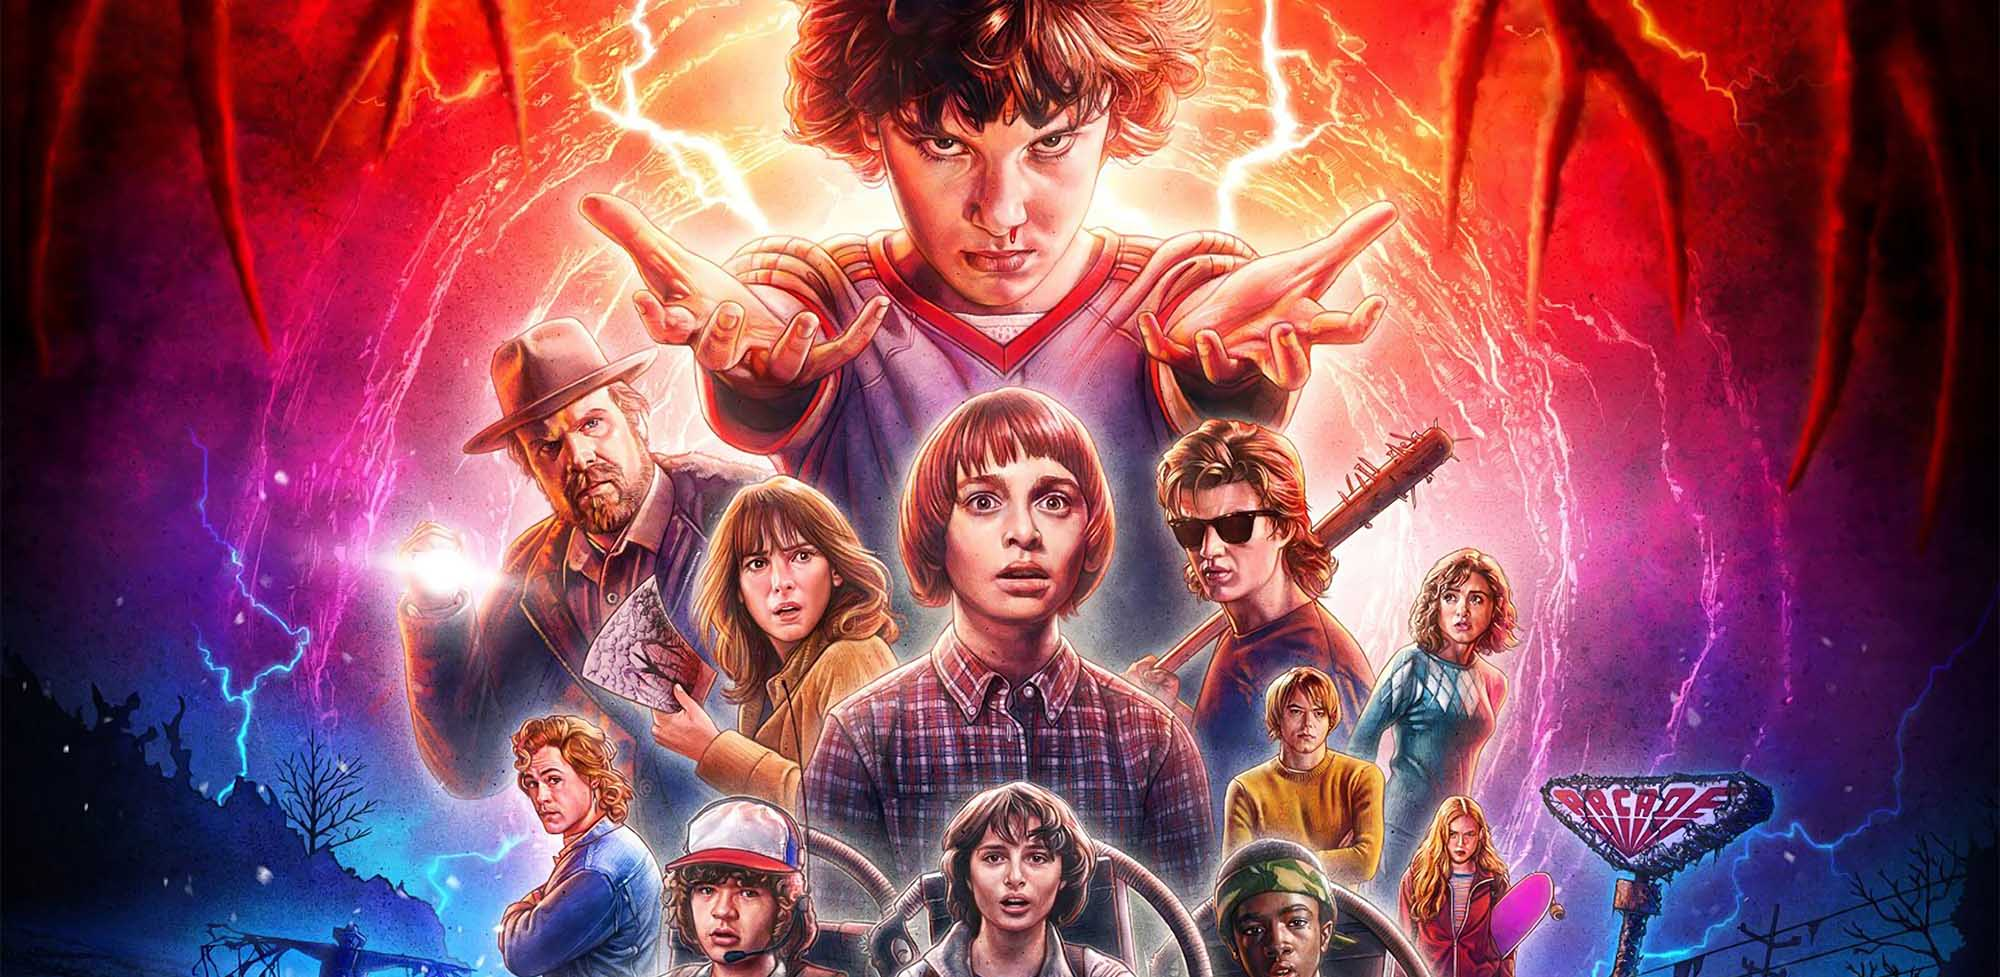 """Looks like the 'Stranger Things' creators are being sued for allegedly """"stealing"""" the idea for their hit show. Can one actually steal an idea?"""